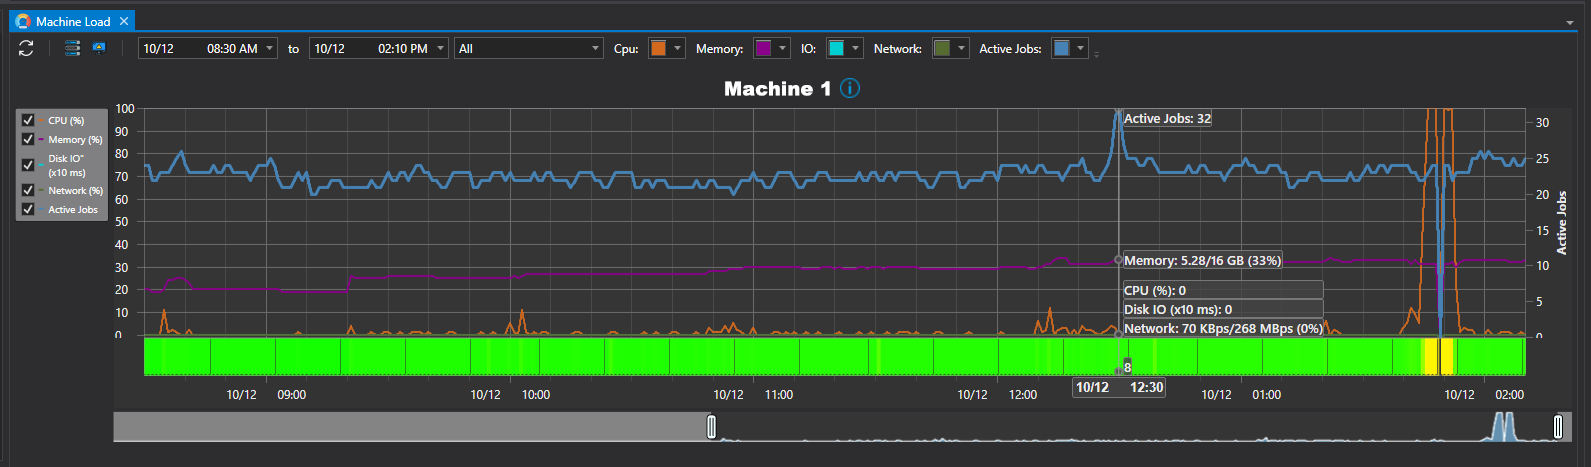 Optimize system resources and workload performance with ActiveBatch Machine Load View.